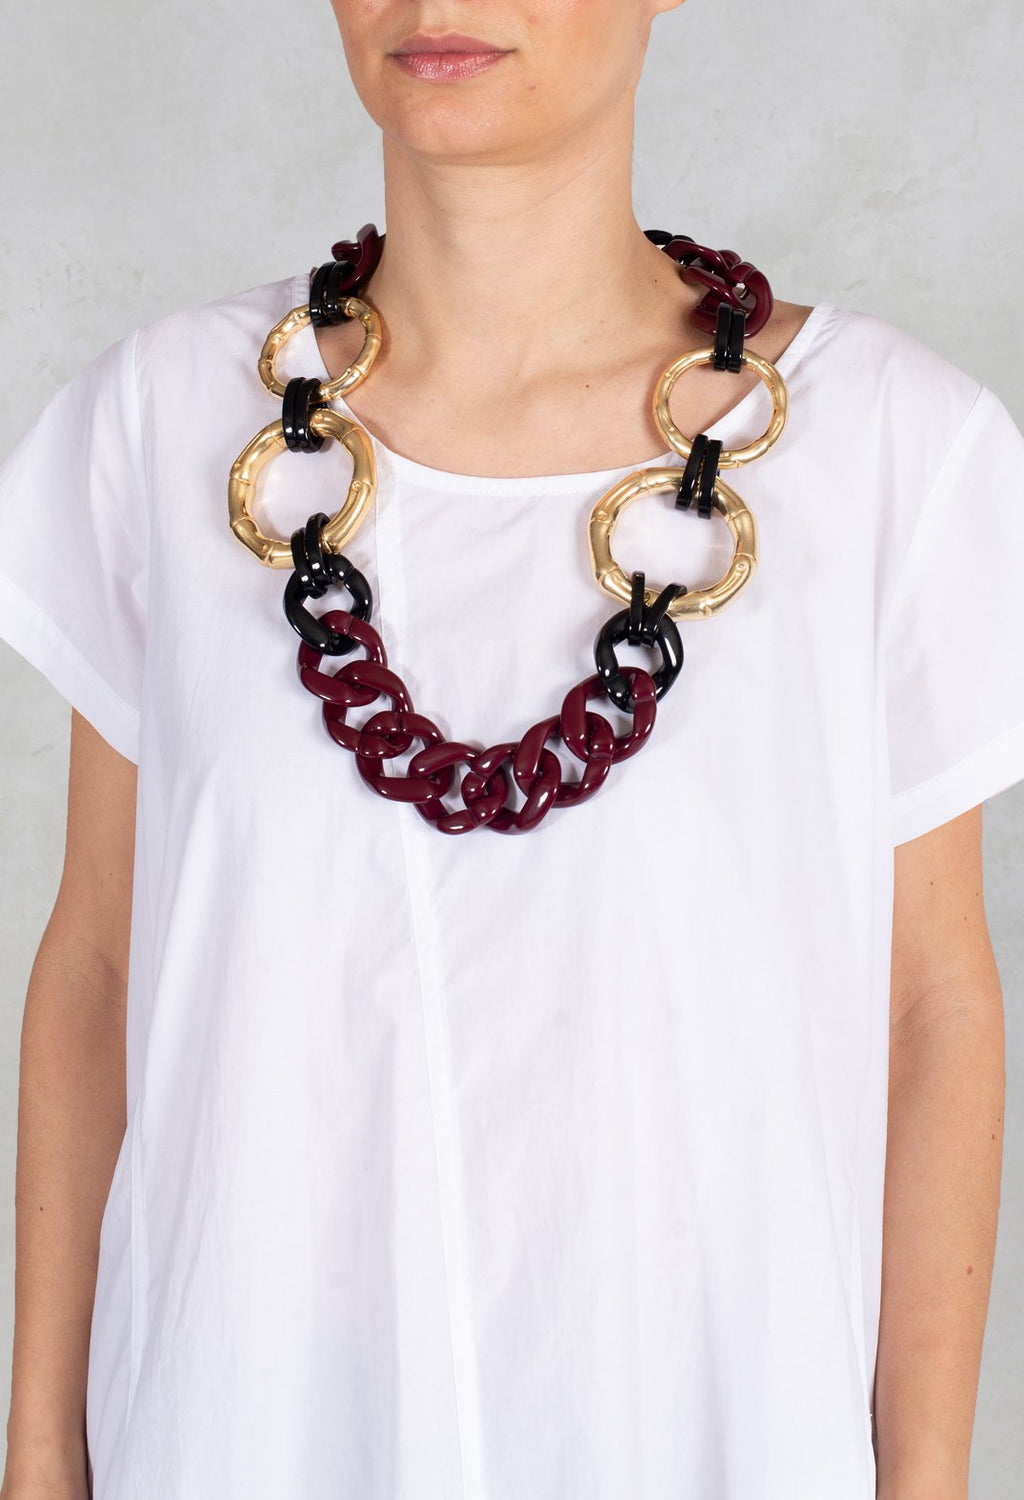 Necklace with Links in Burgundy and Gold